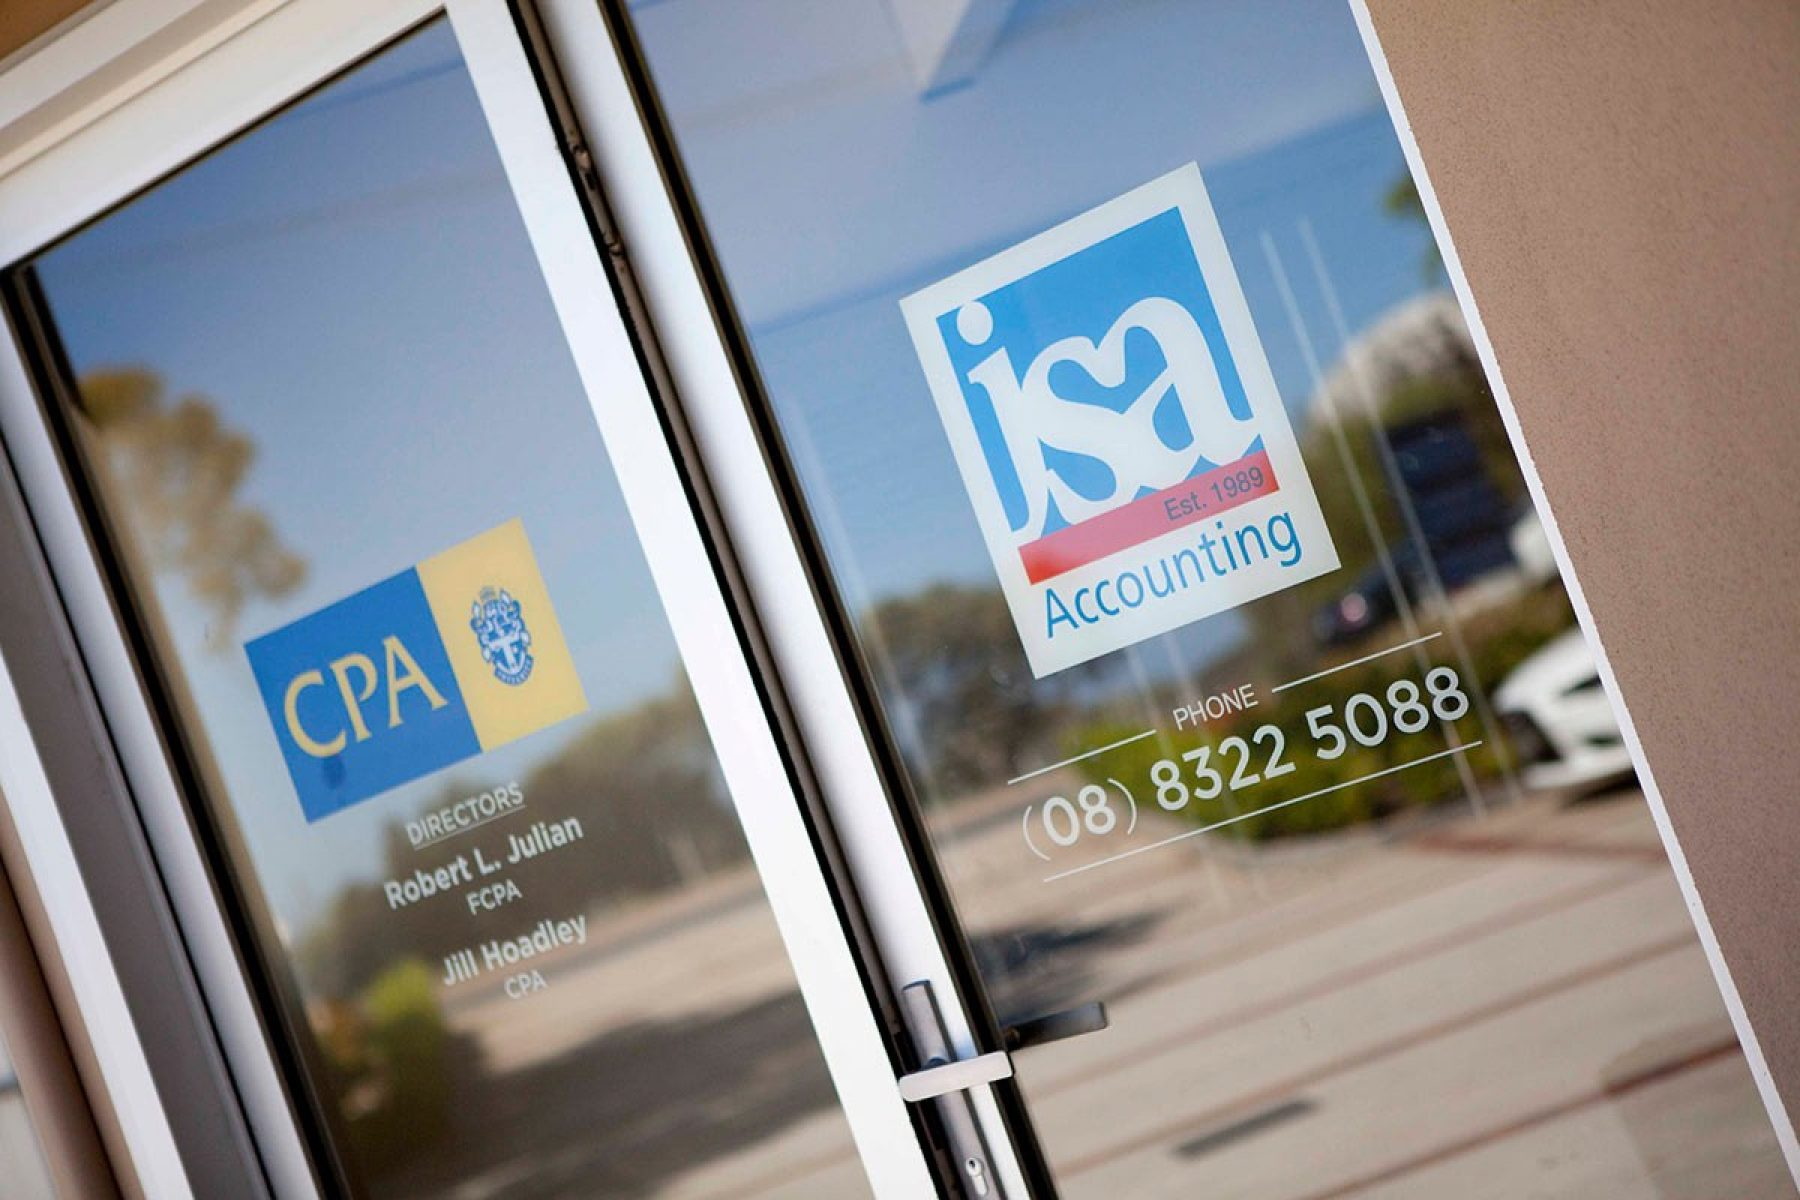 JSA chartered accountants Adelaide - Tax, Financial Planning, Business Advisory, super